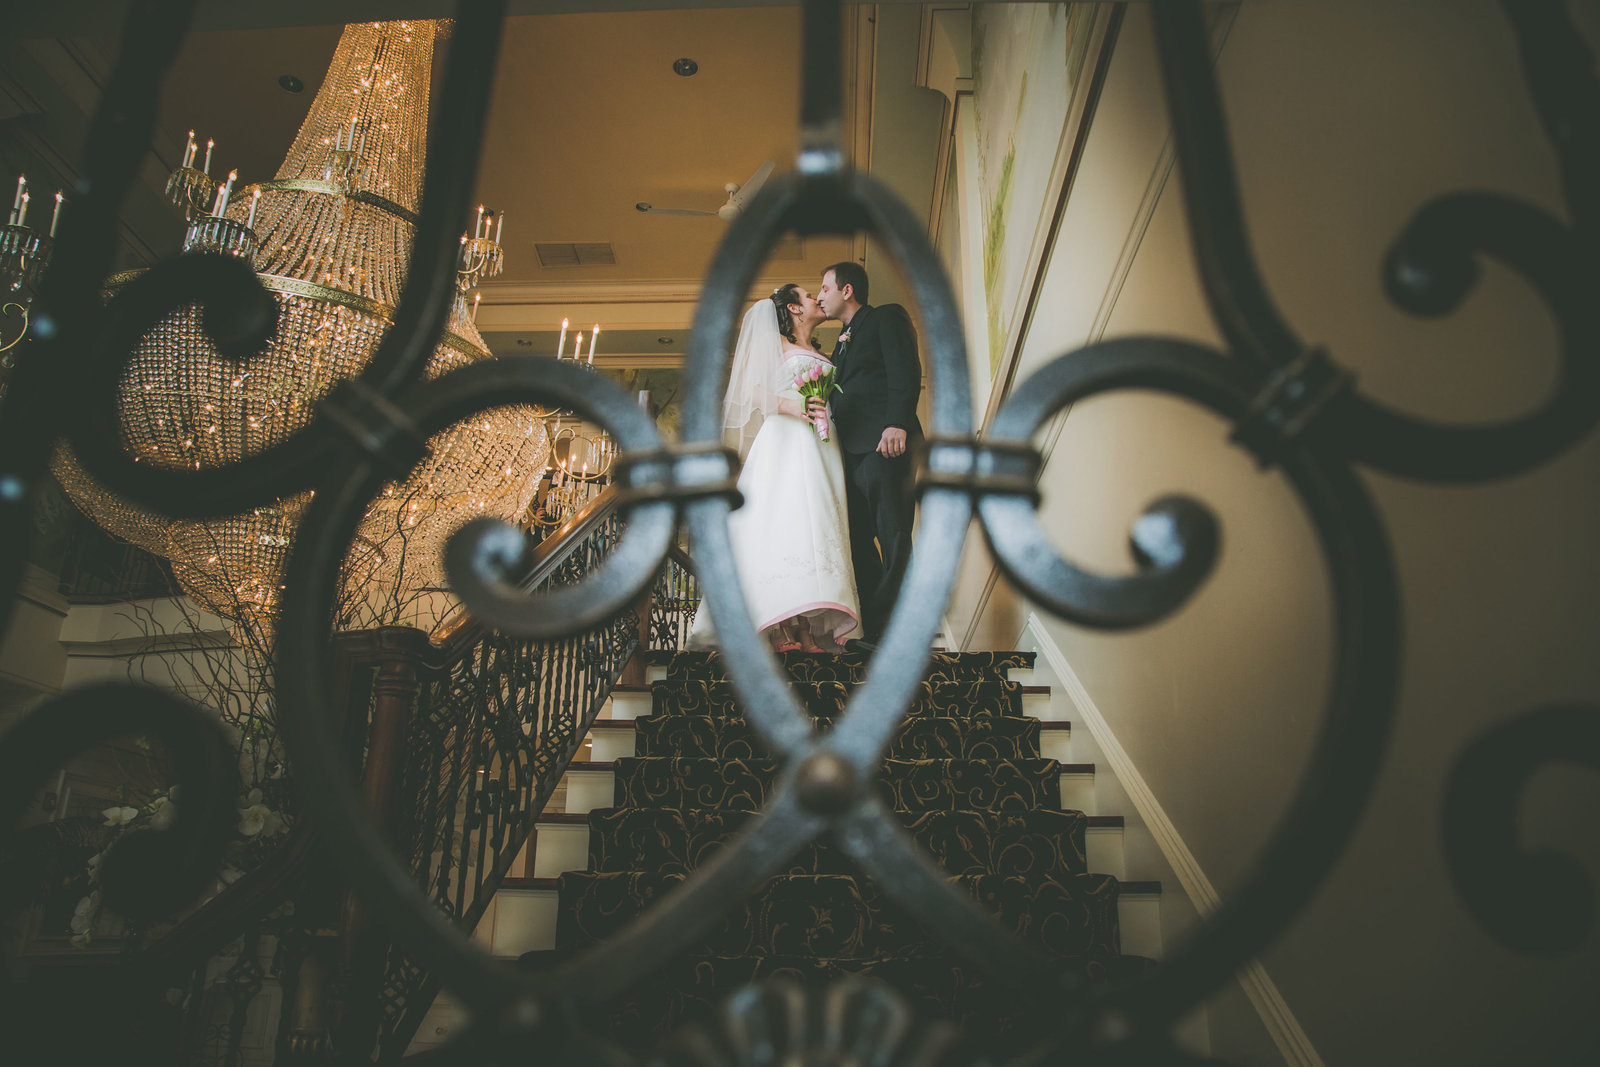 Bride and groom are framed within railing on stairway while they kiss.